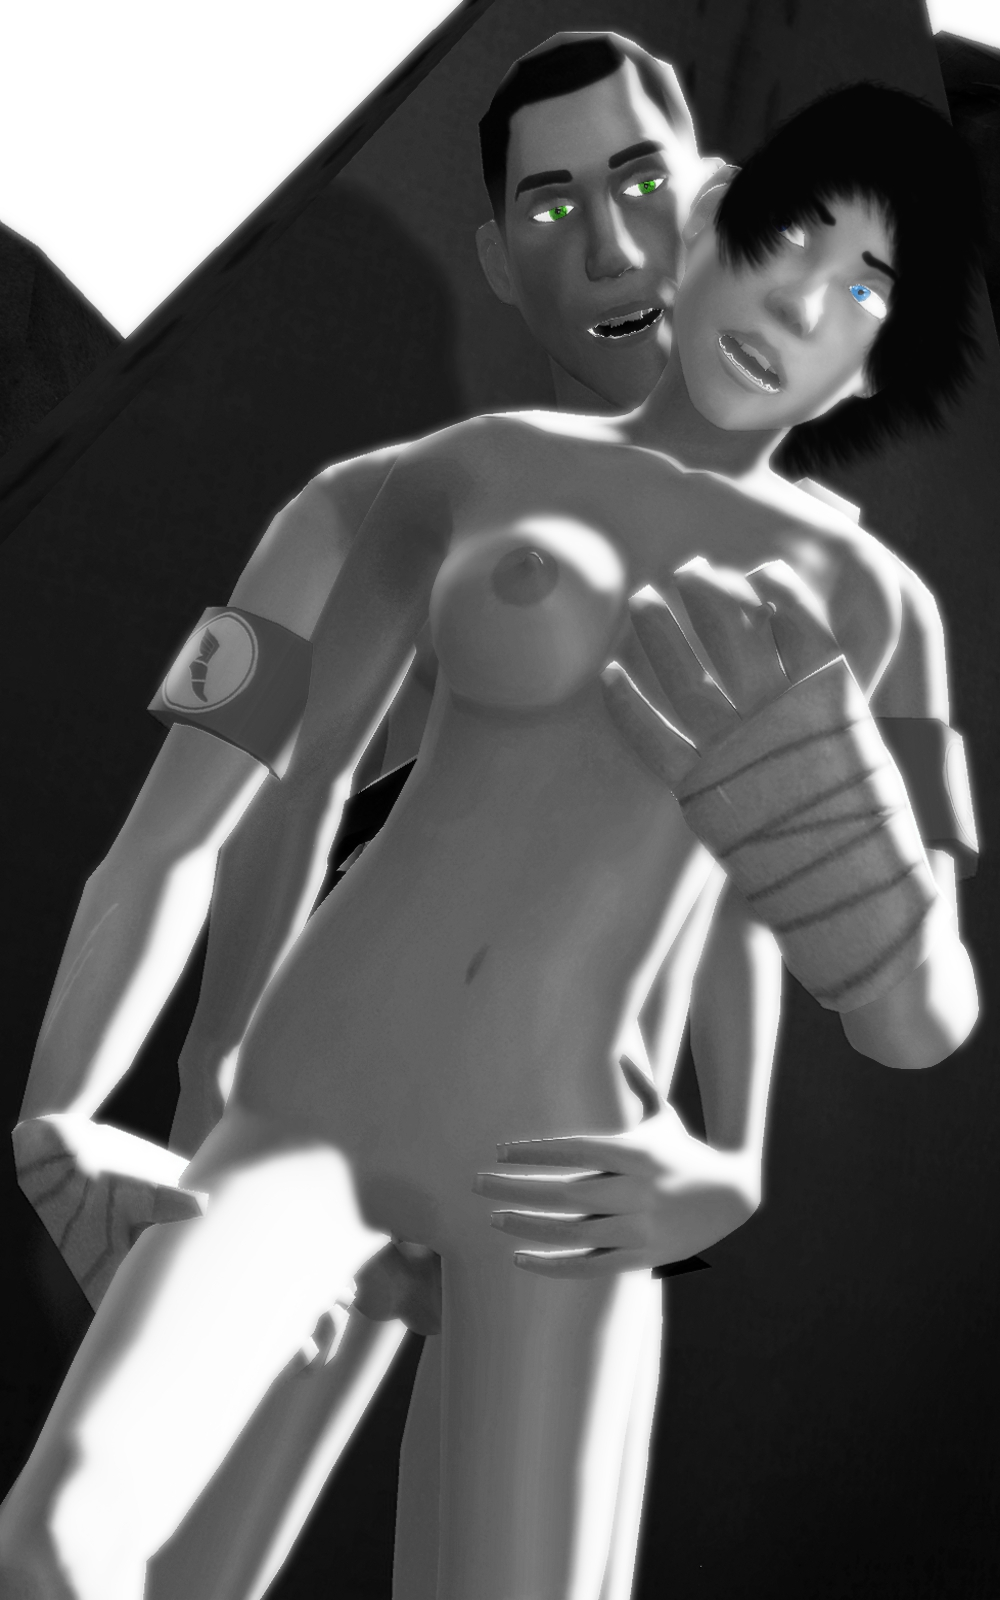 bandaged hand is naruto's boruto in why Skyrim lusty argonian maid porn